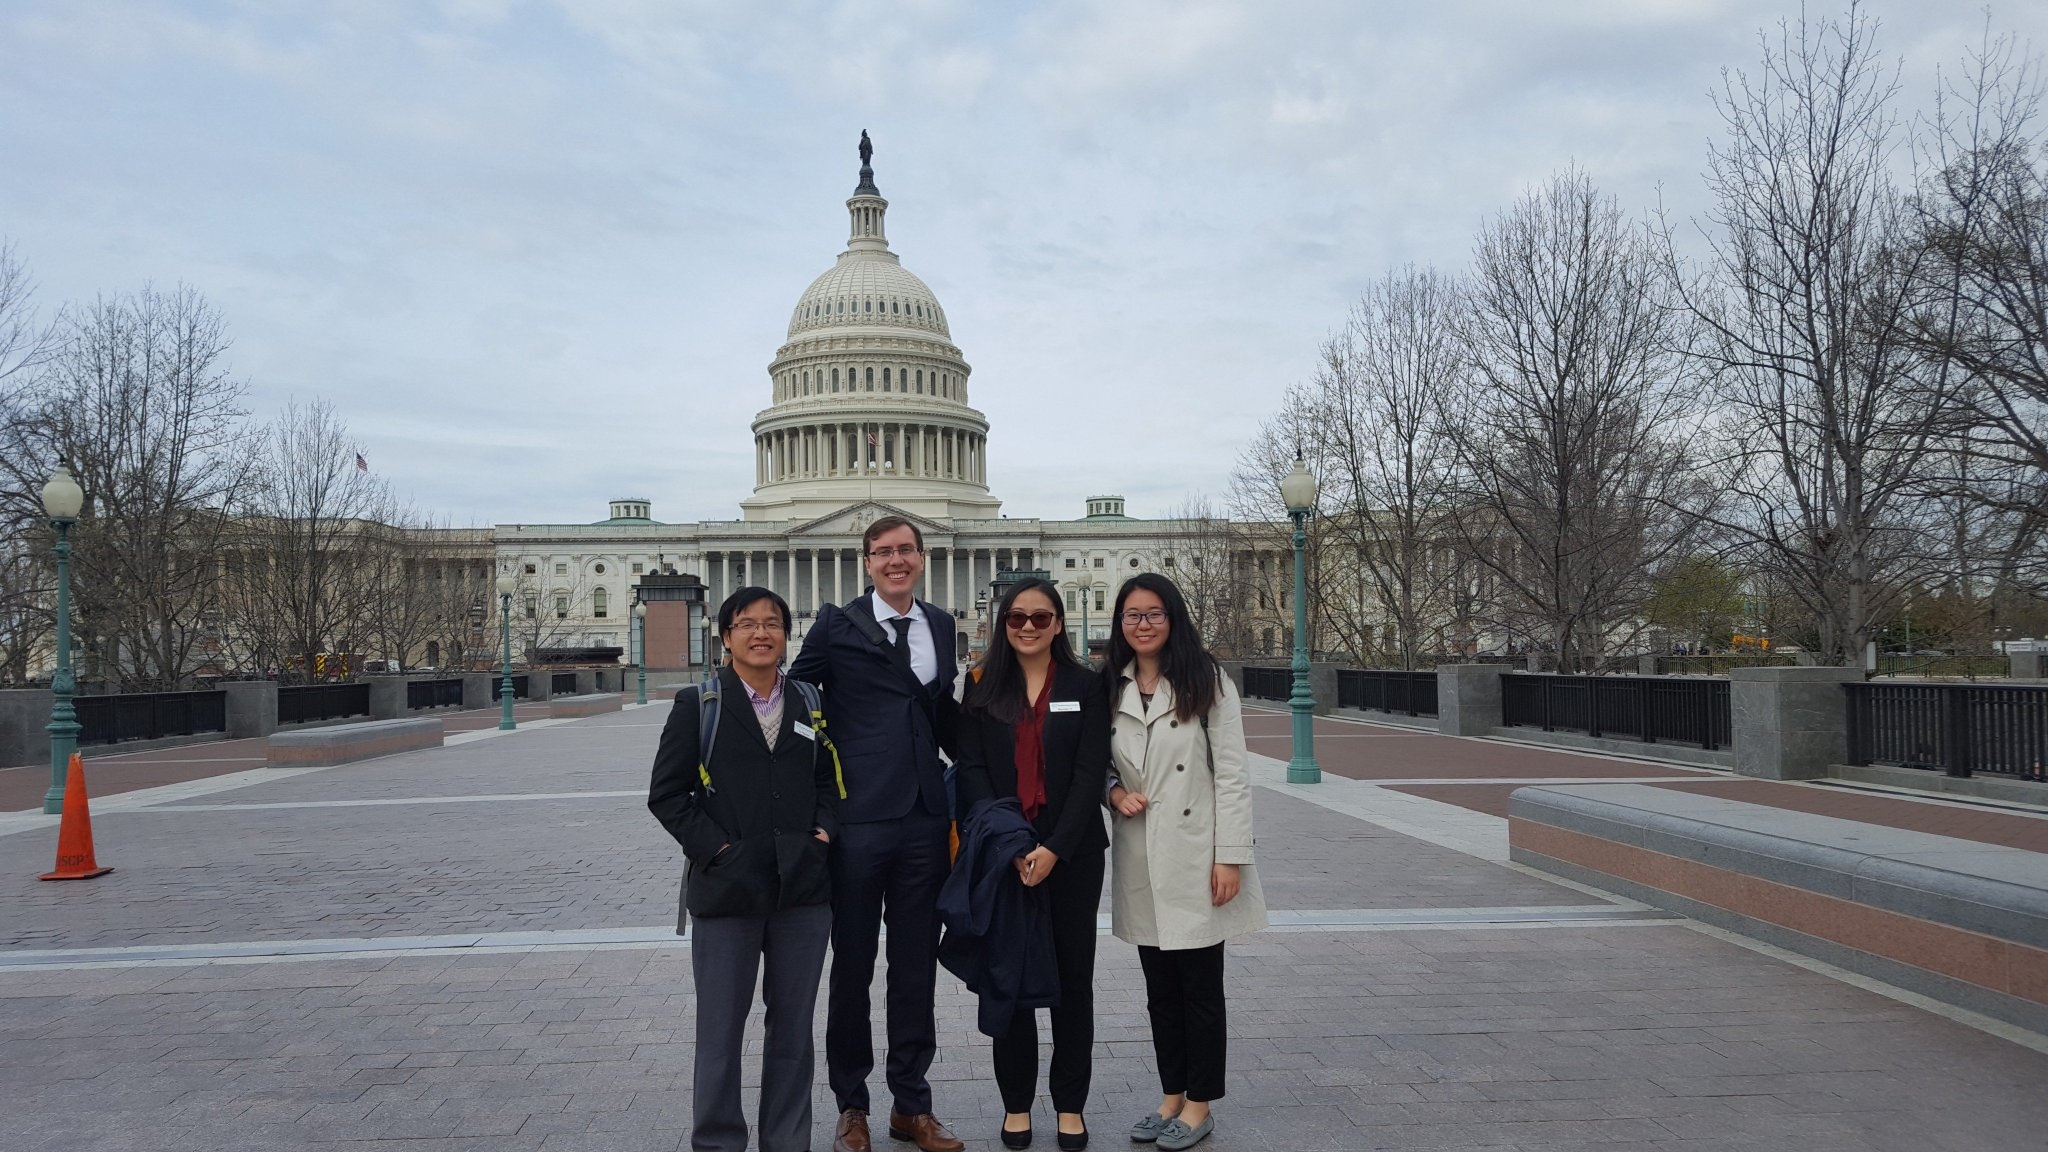 Can't beat those Capitol views 😃 En route to another employer, a few more of our students made good on a photo op in #WashingtonDC! https://t.co/OwJrYbFgO8